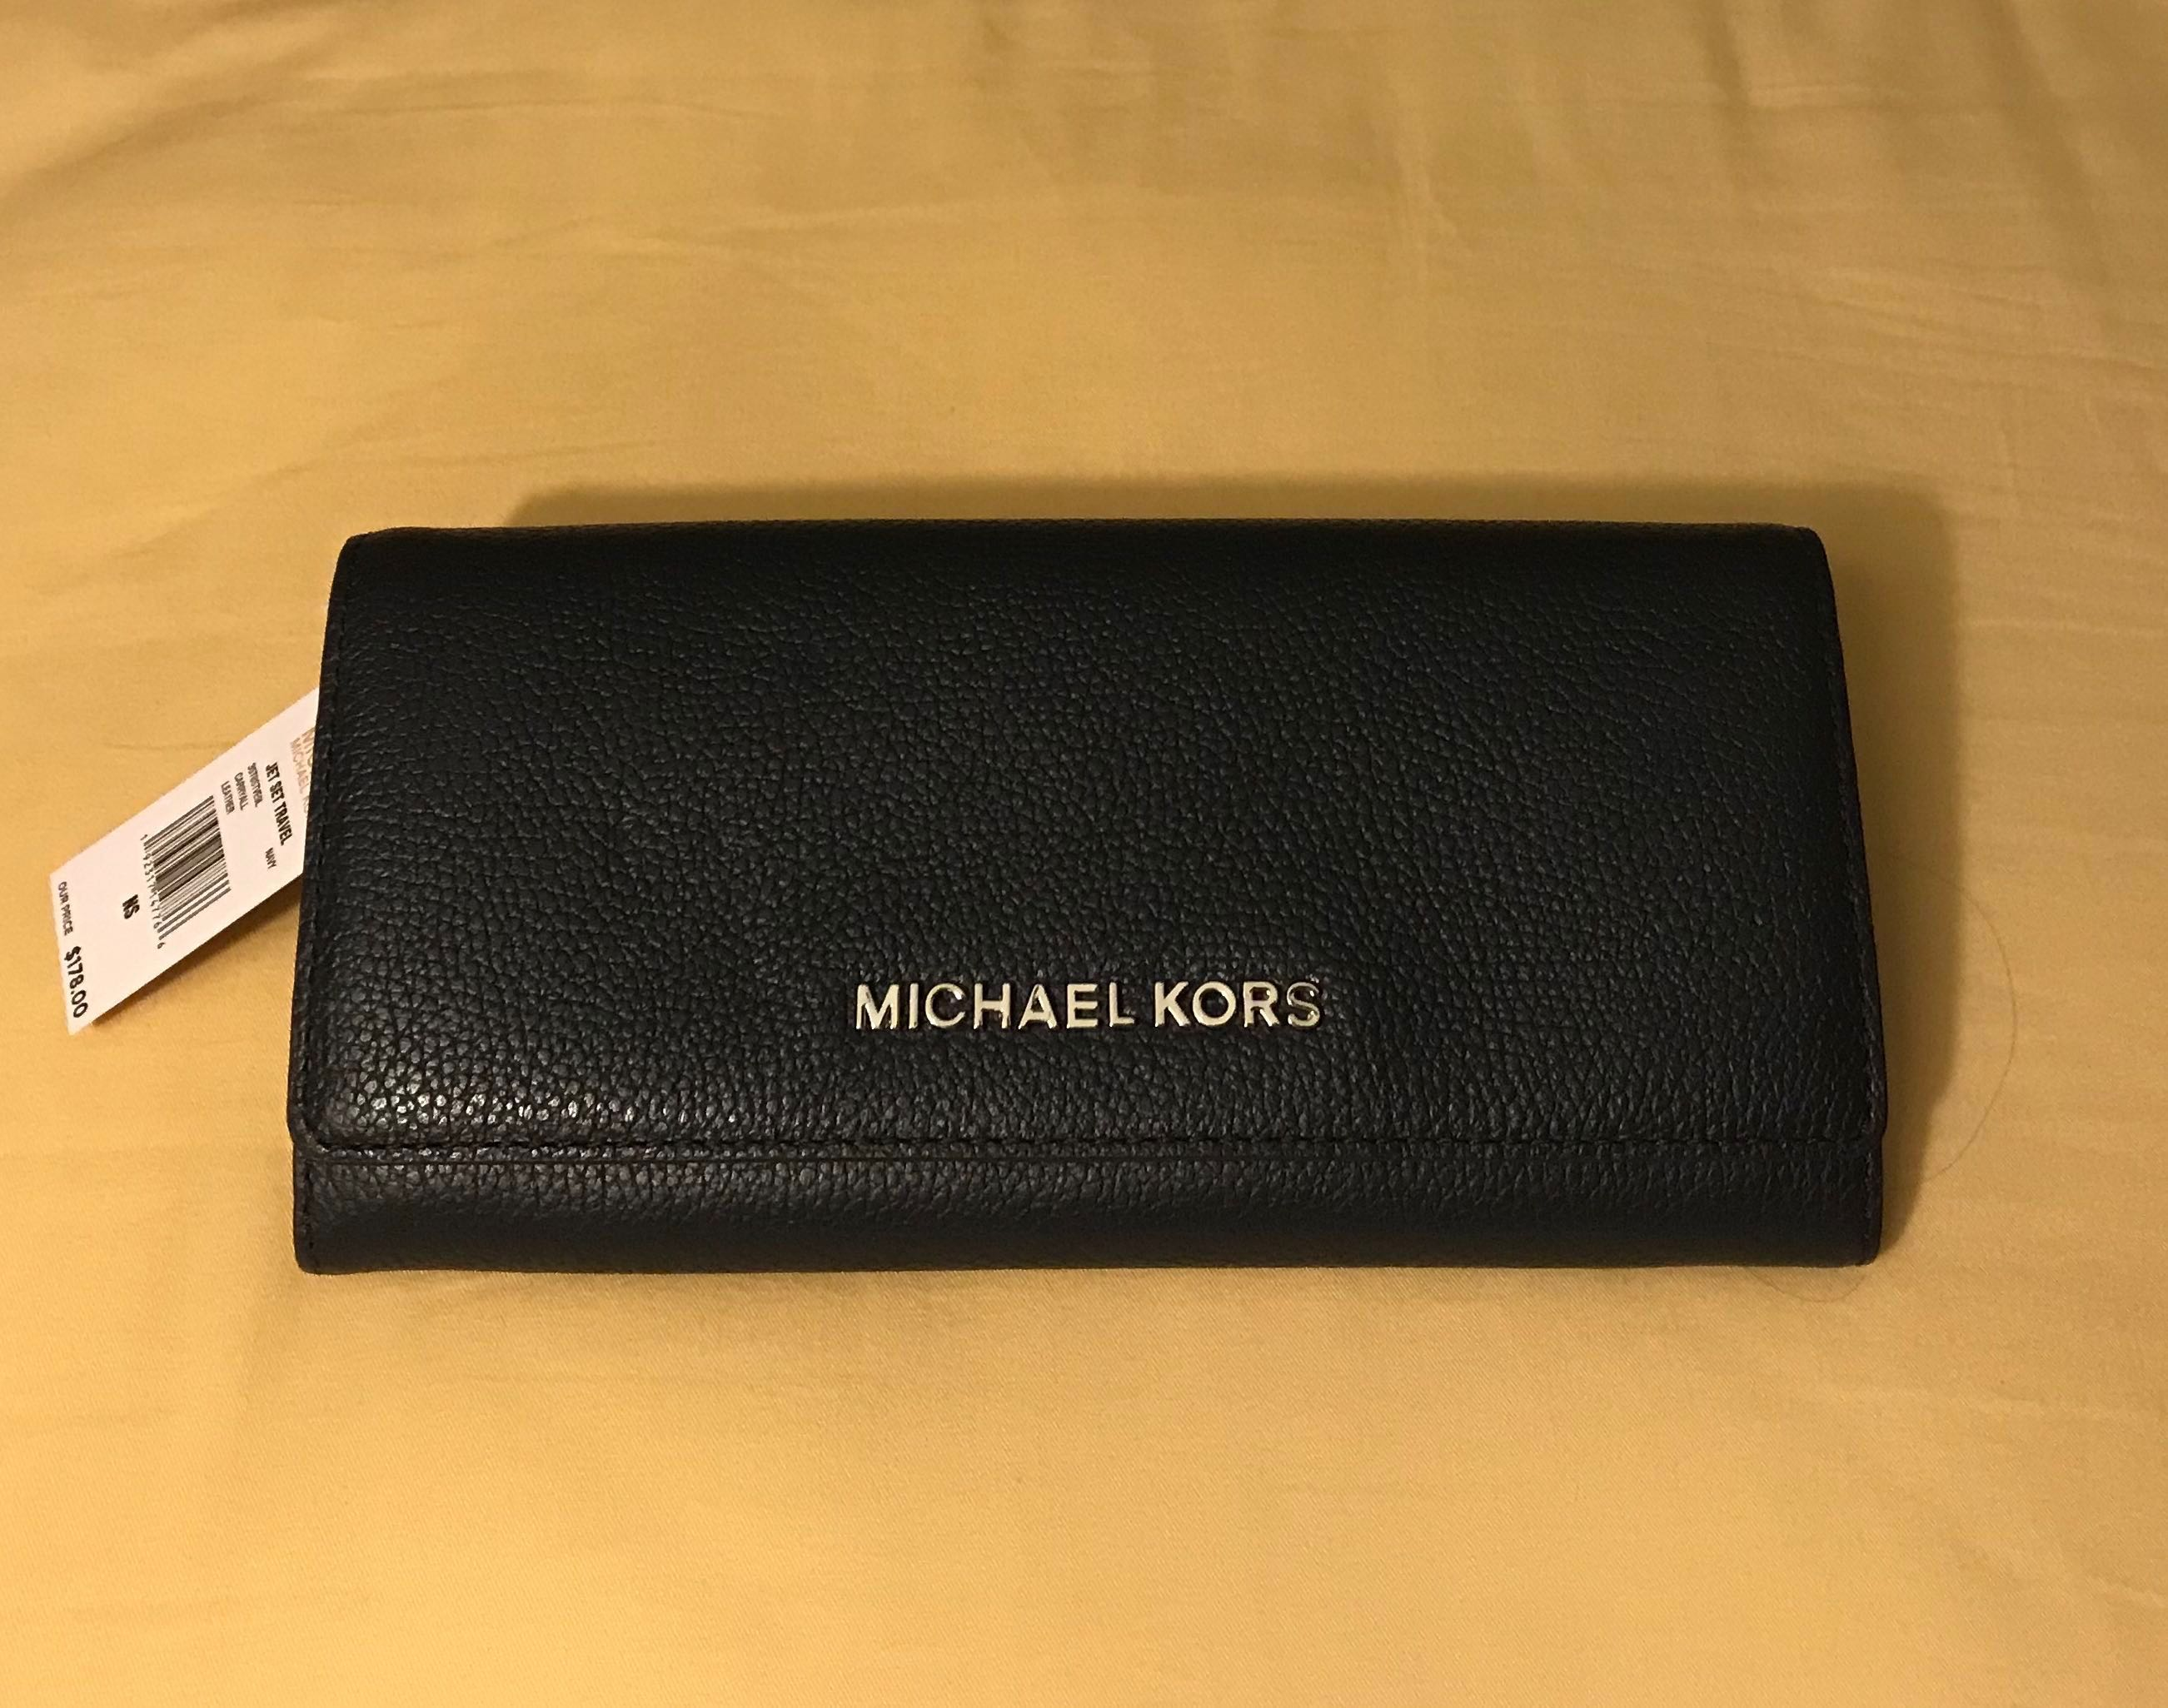 f3558b975ea0 Michael Kors Women's leather Wallet , Women's Fashion, Bags ...